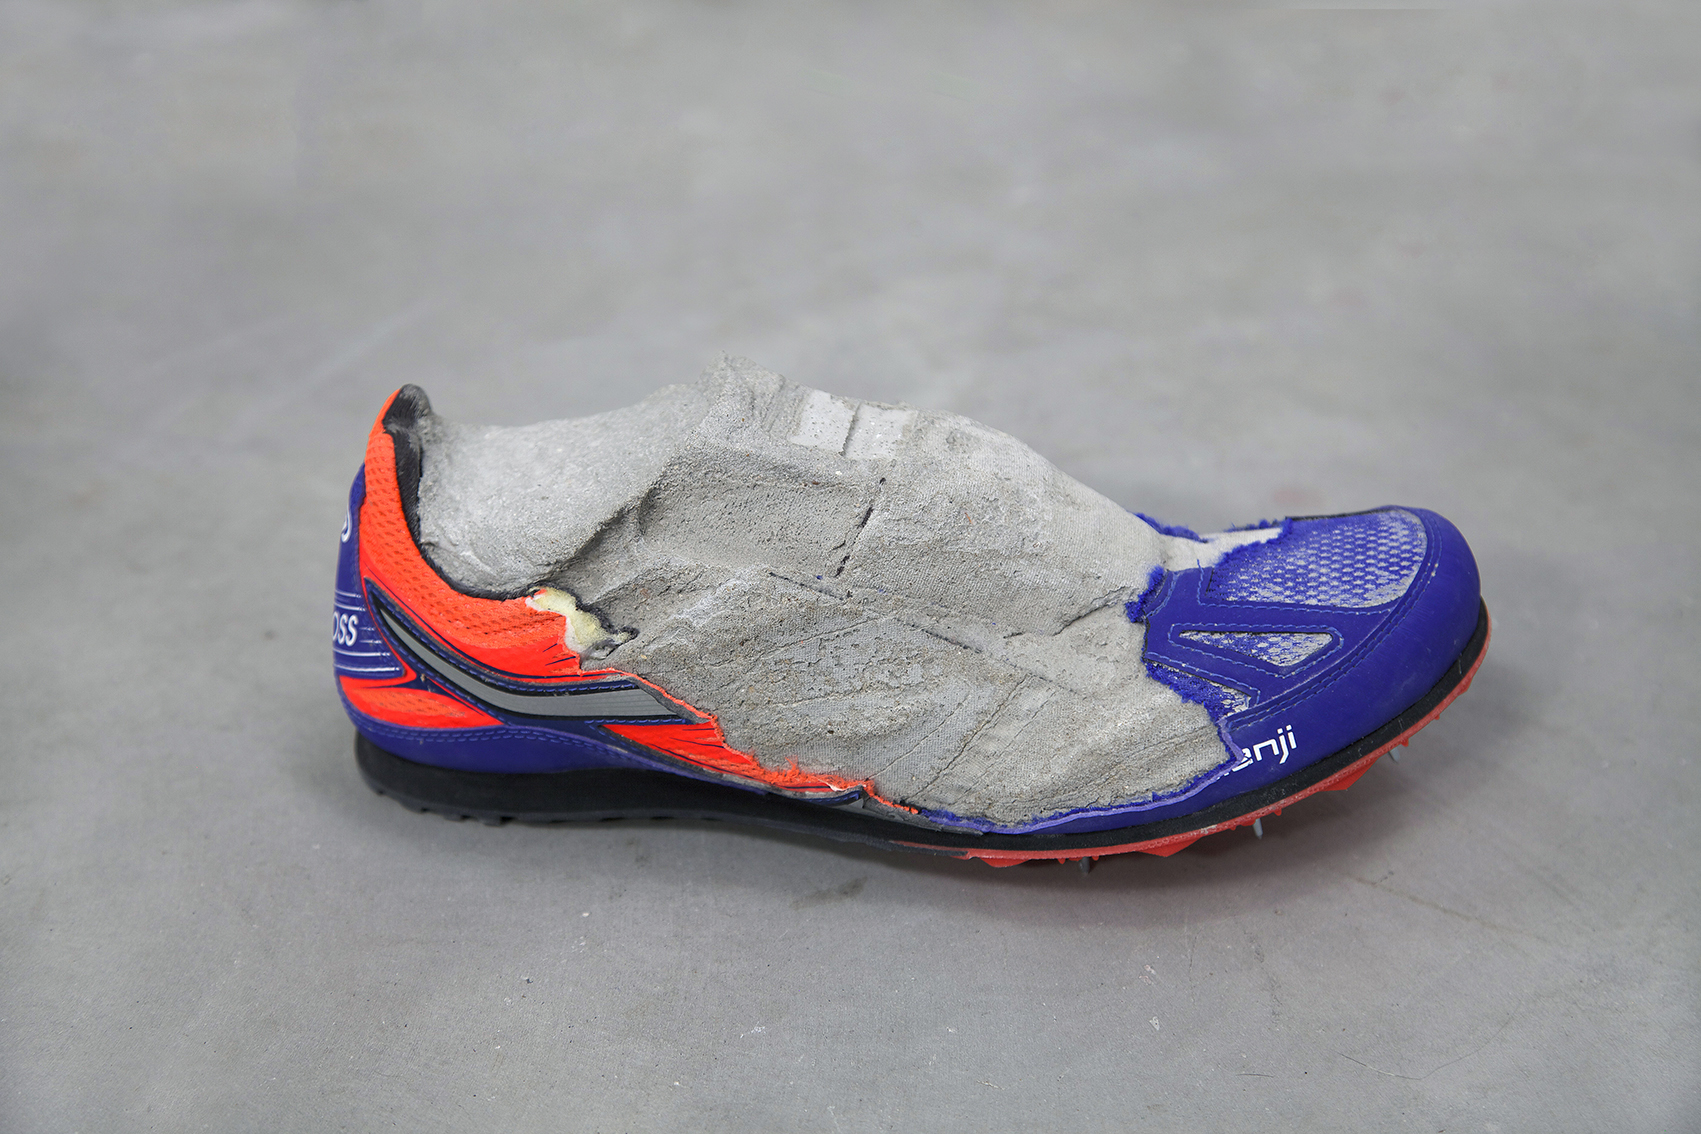 05-fossil01low